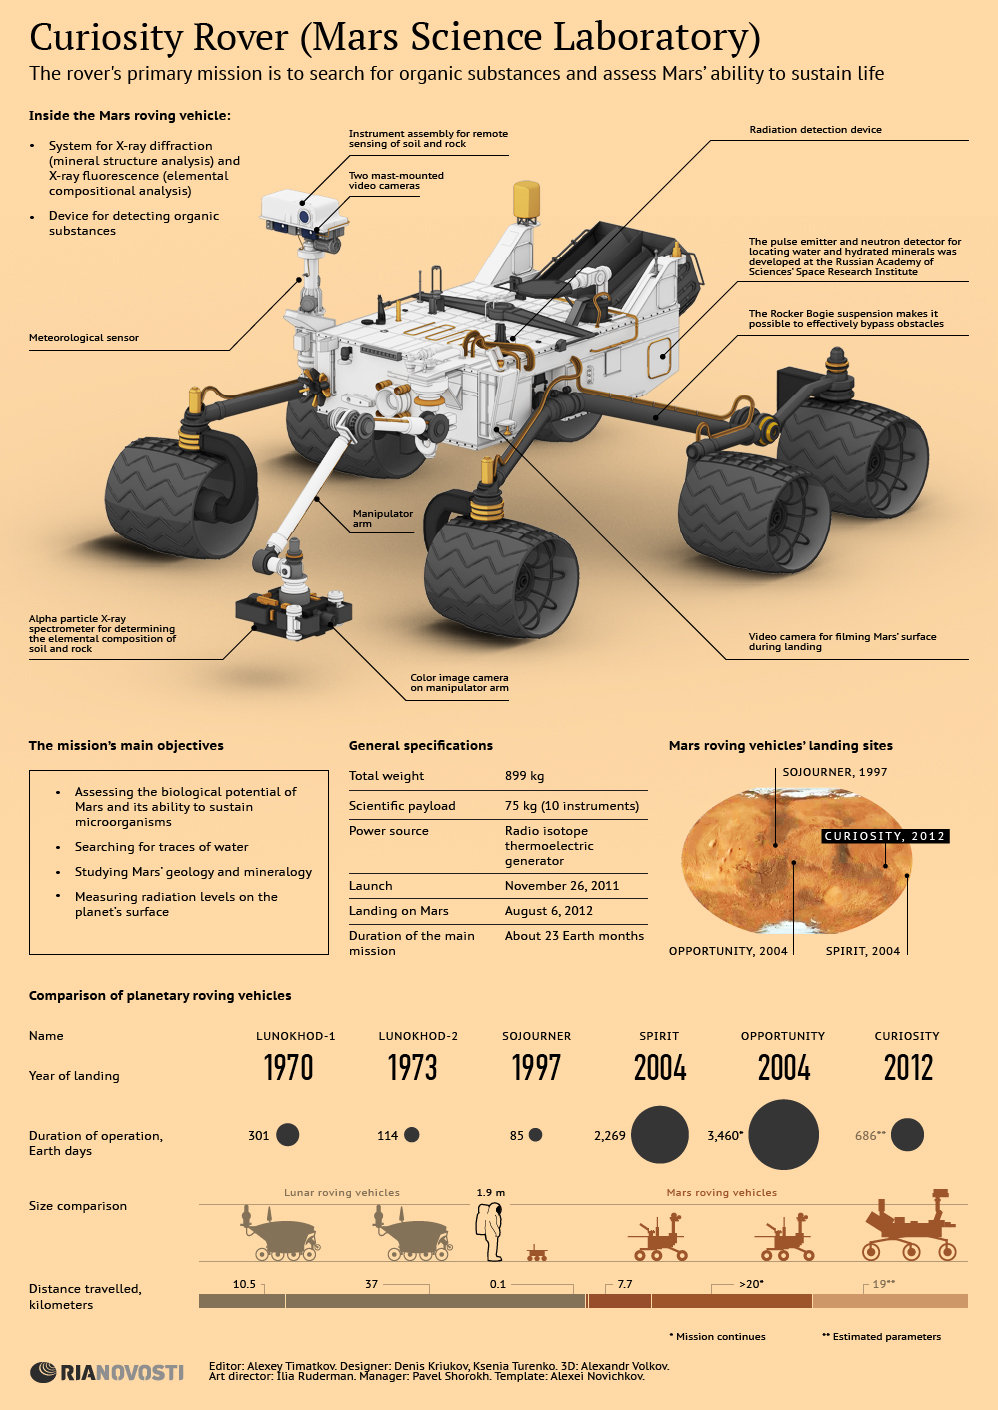 Curiosity Rover: One Year on Mars